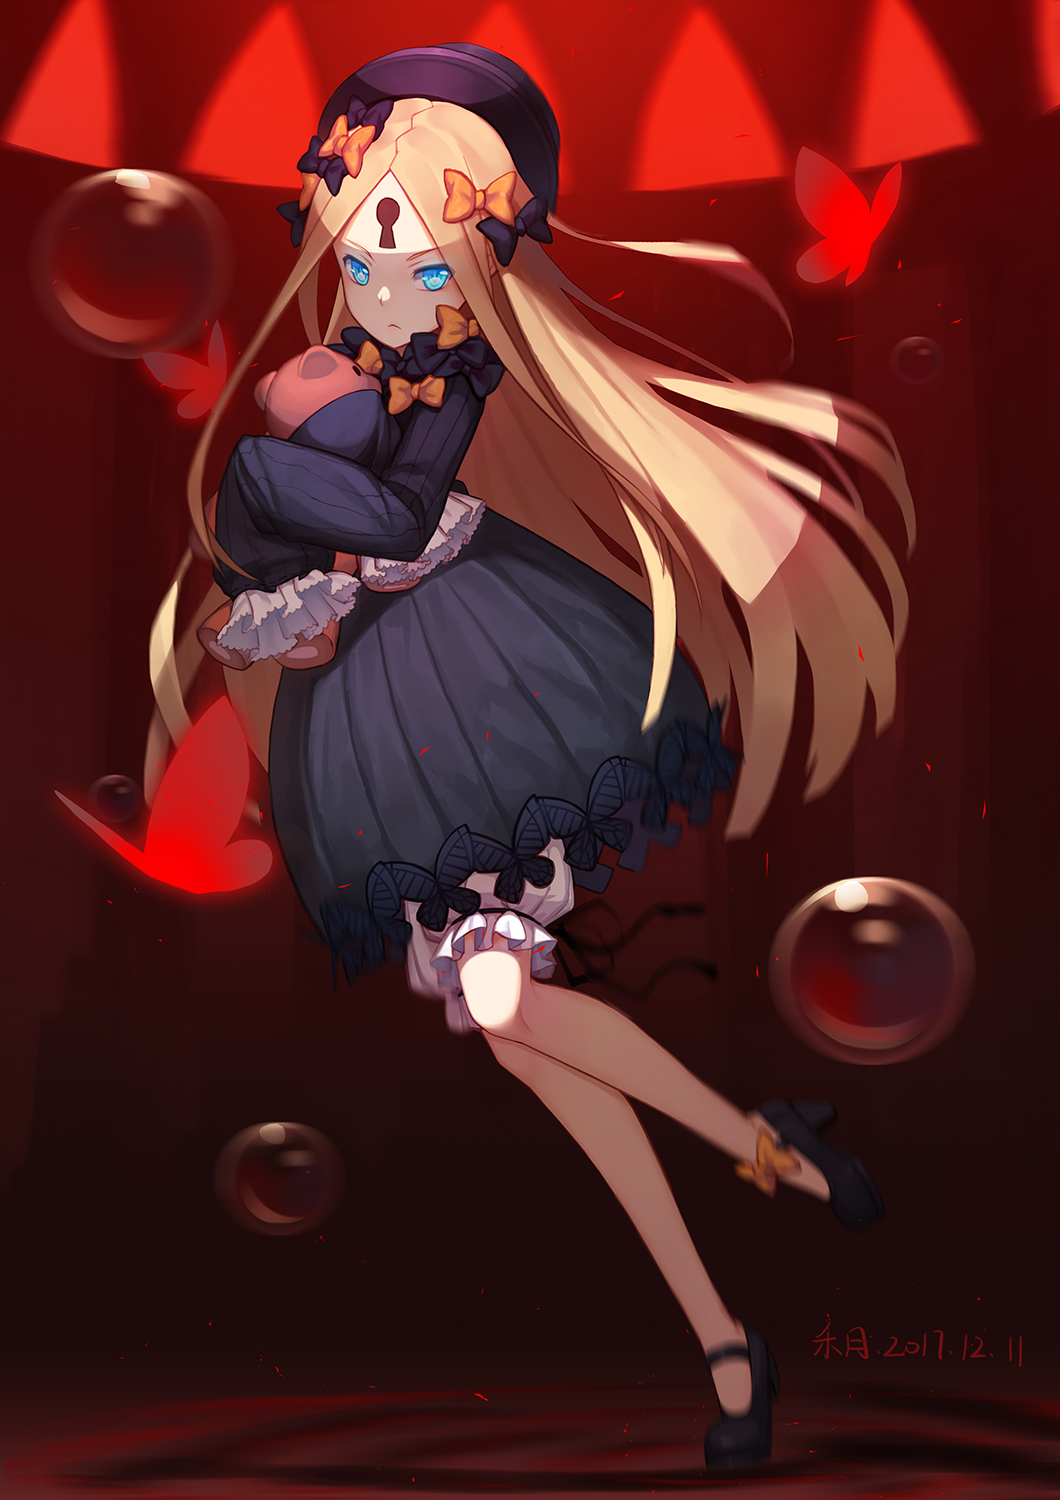 1girl abigail_williams_(fate/grand_order) bangs black_bow black_dress black_footwear black_hat blonde_hair bloomers blue_eyes bow bubble butterfly closed_mouth commentary_request dated dress fate/grand_order fate_(series) hair_bow hands_in_sleeves hat high_heels highres keyhole long_hair long_sleeves looking_at_viewer looking_to_the_side mary_janes object_hug orange_bow parted_bangs polka_dot polka_dot_bow shoes solo standing standing_on_one_leg stuffed_animal stuffed_toy teddy_bear tiptoes ttheyue underwear v-shaped_eyebrows very_long_hair white_bloomers